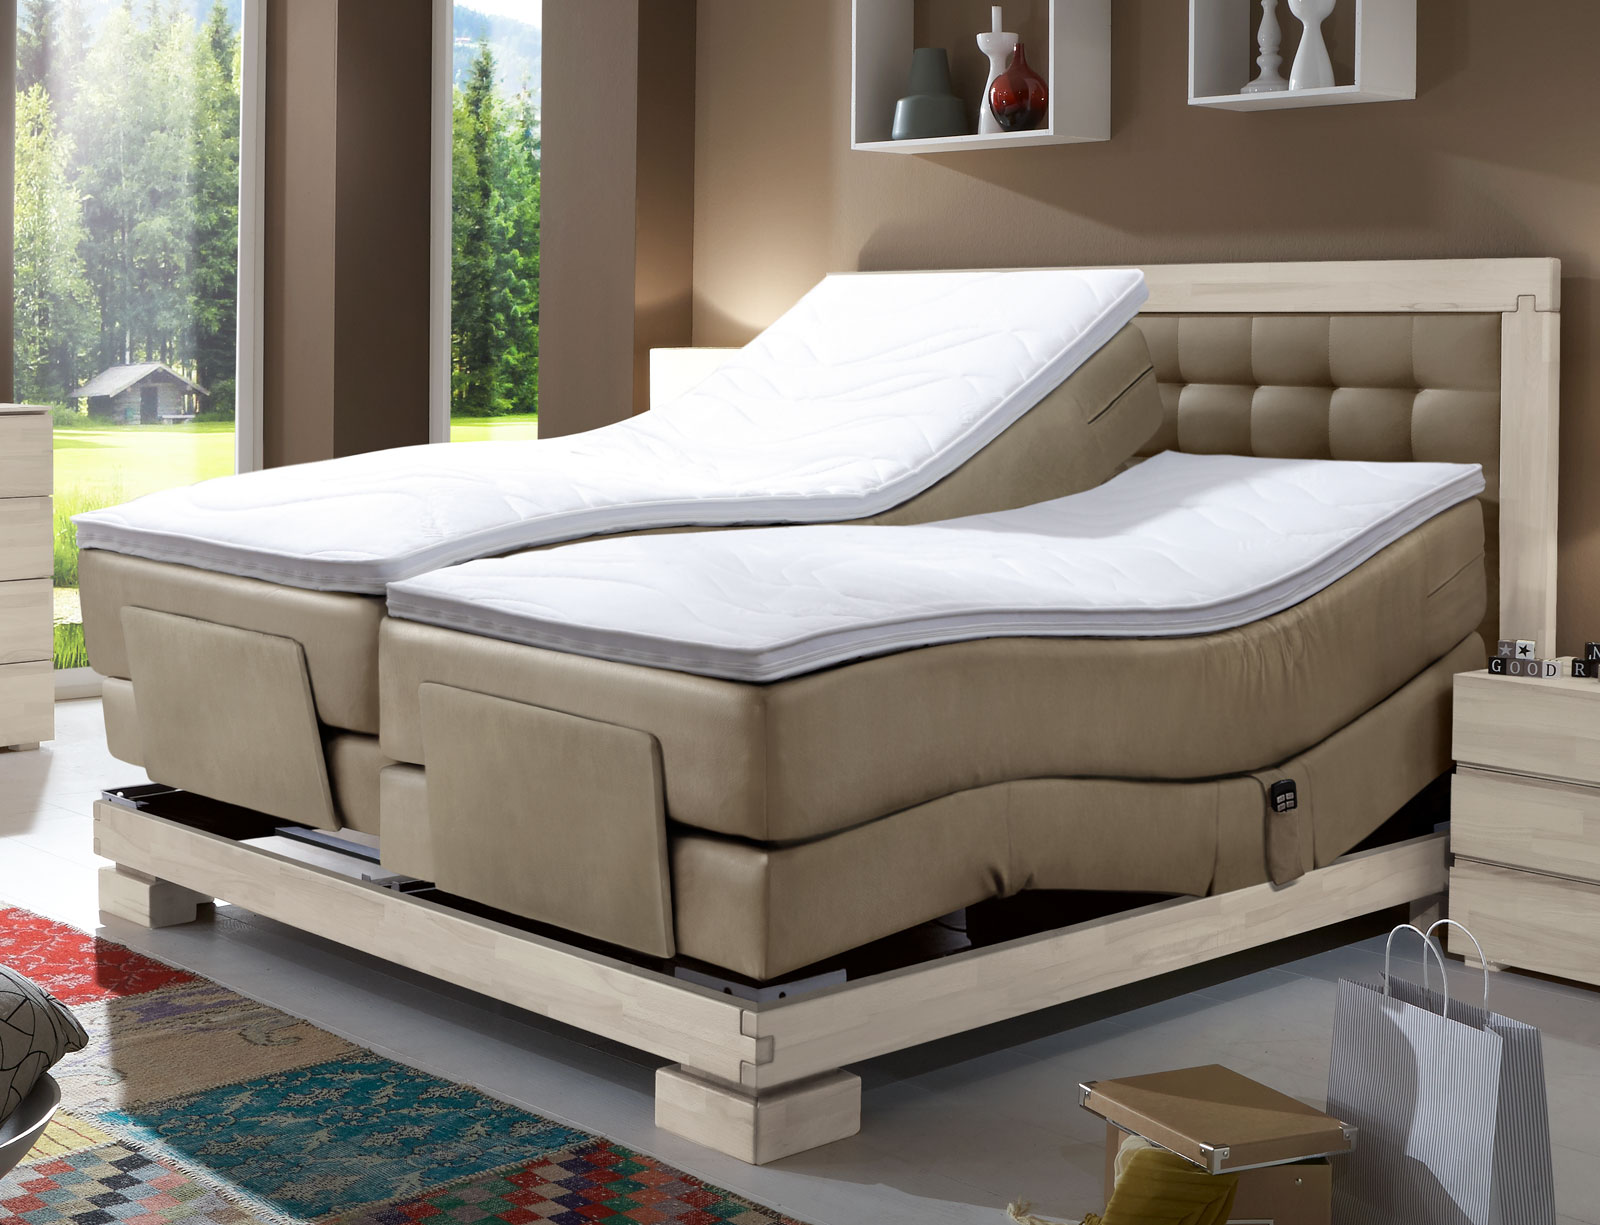 boxspringbett in 160x200 mit motor viterbus elektro. Black Bedroom Furniture Sets. Home Design Ideas